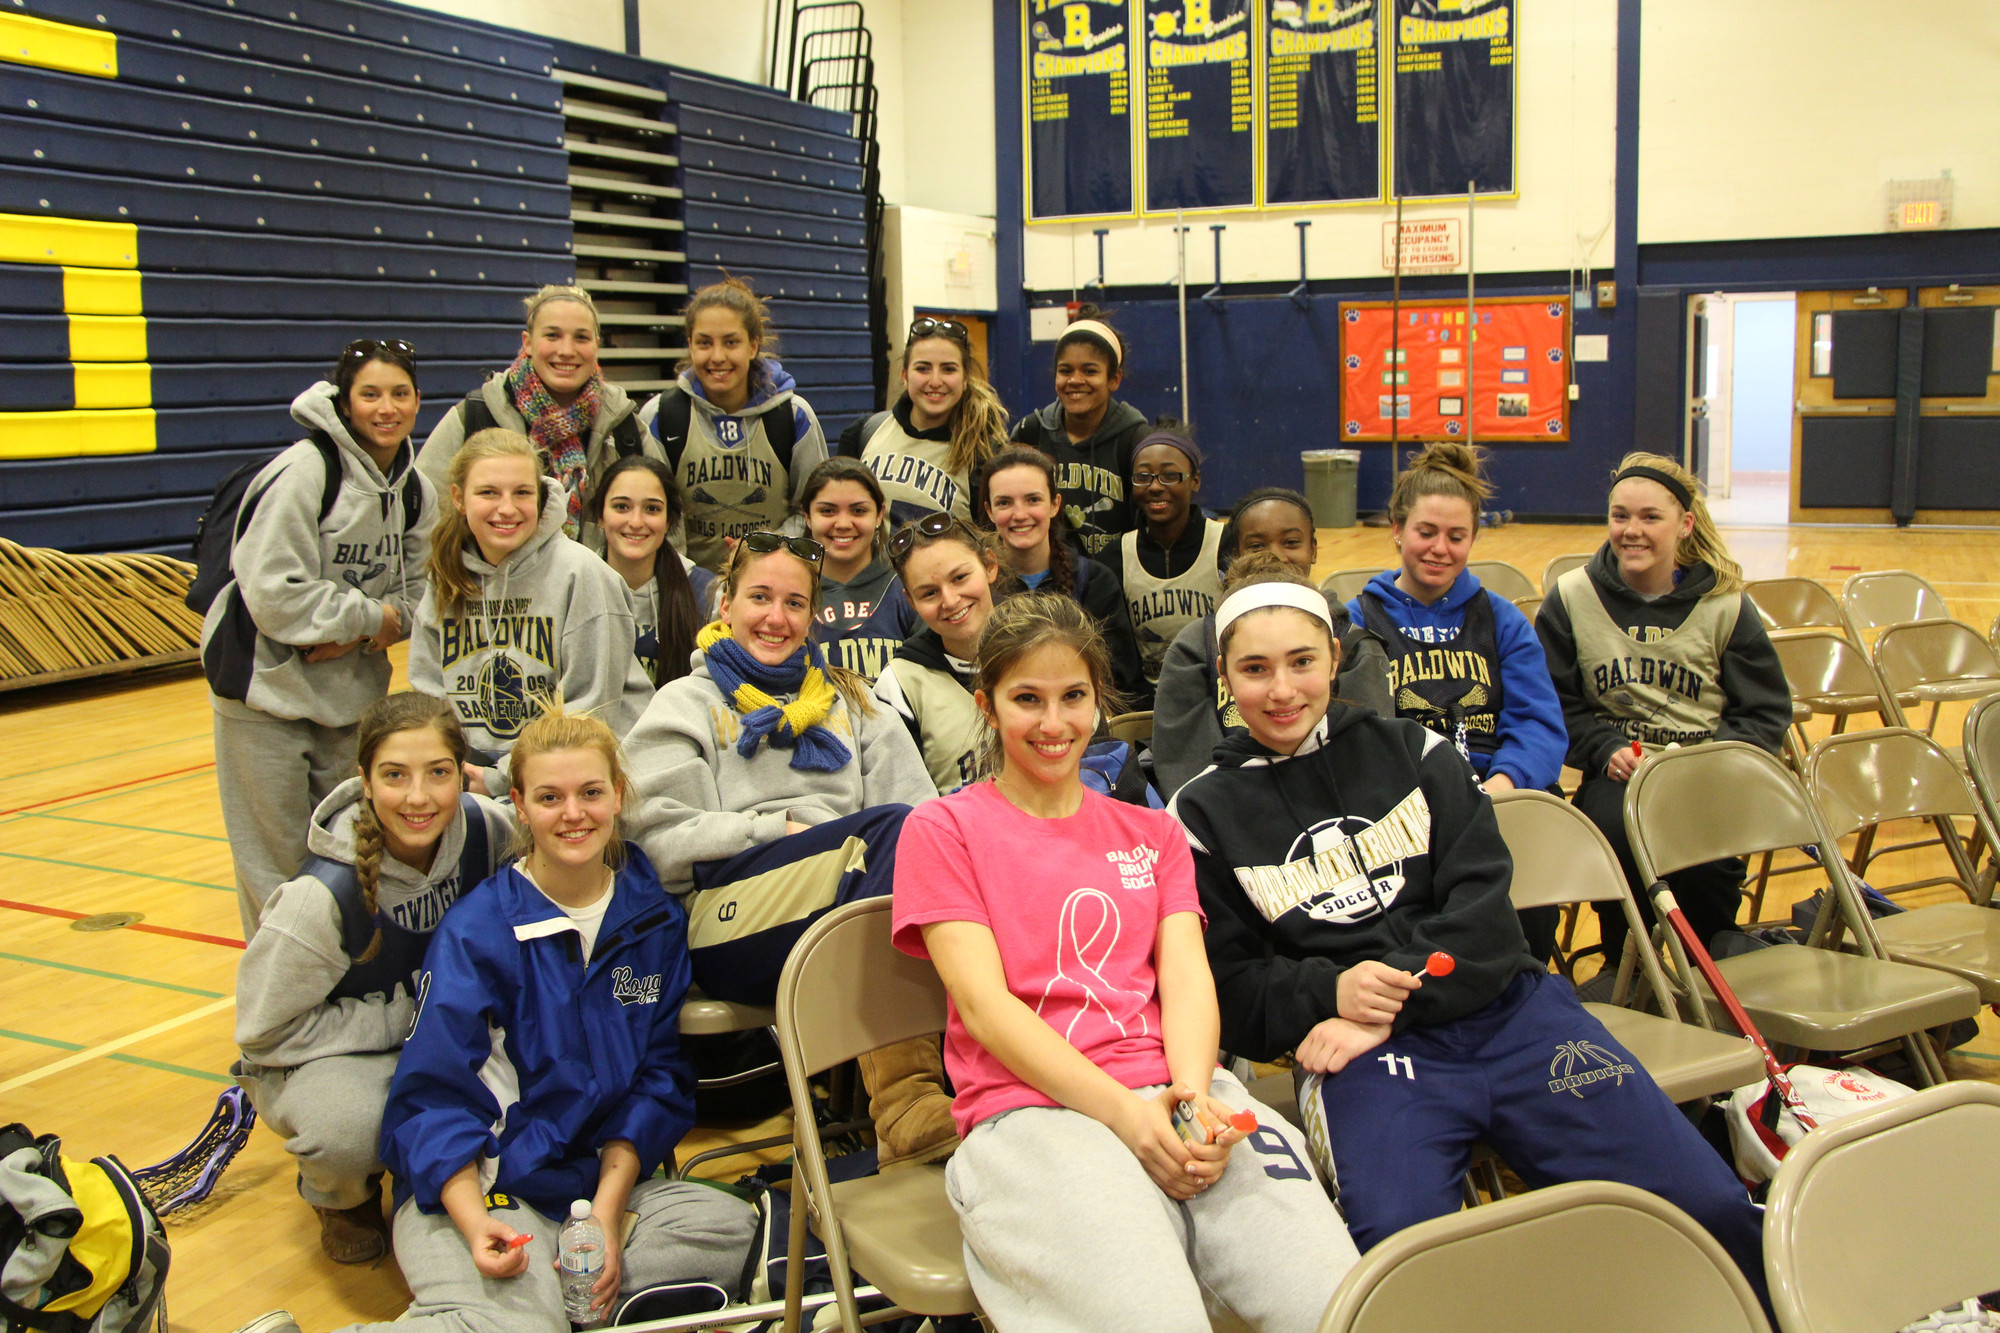 Students from the Baldwin girls� lacrosse team came to cermonys to show support and thanks for B4C�s fundraising efforts.